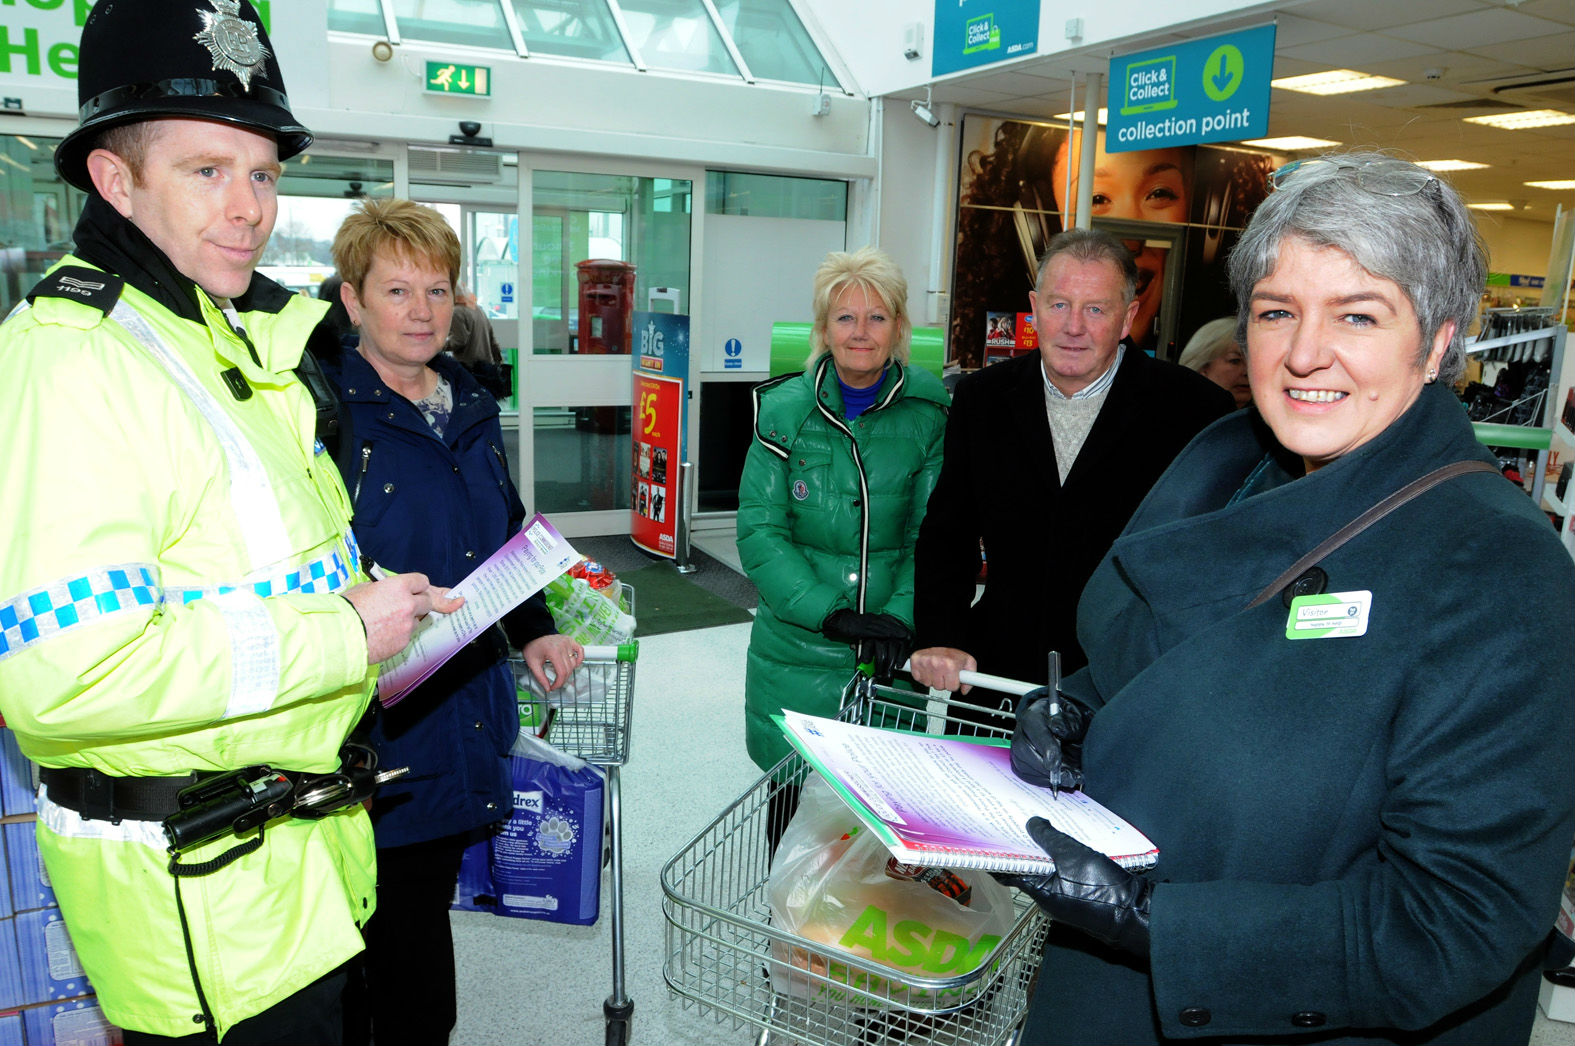 Police Commissioner Jane Kennedy, right, with Sergeant Neil Birkett and shoppers at Asda seeking their views on increasing the police precept